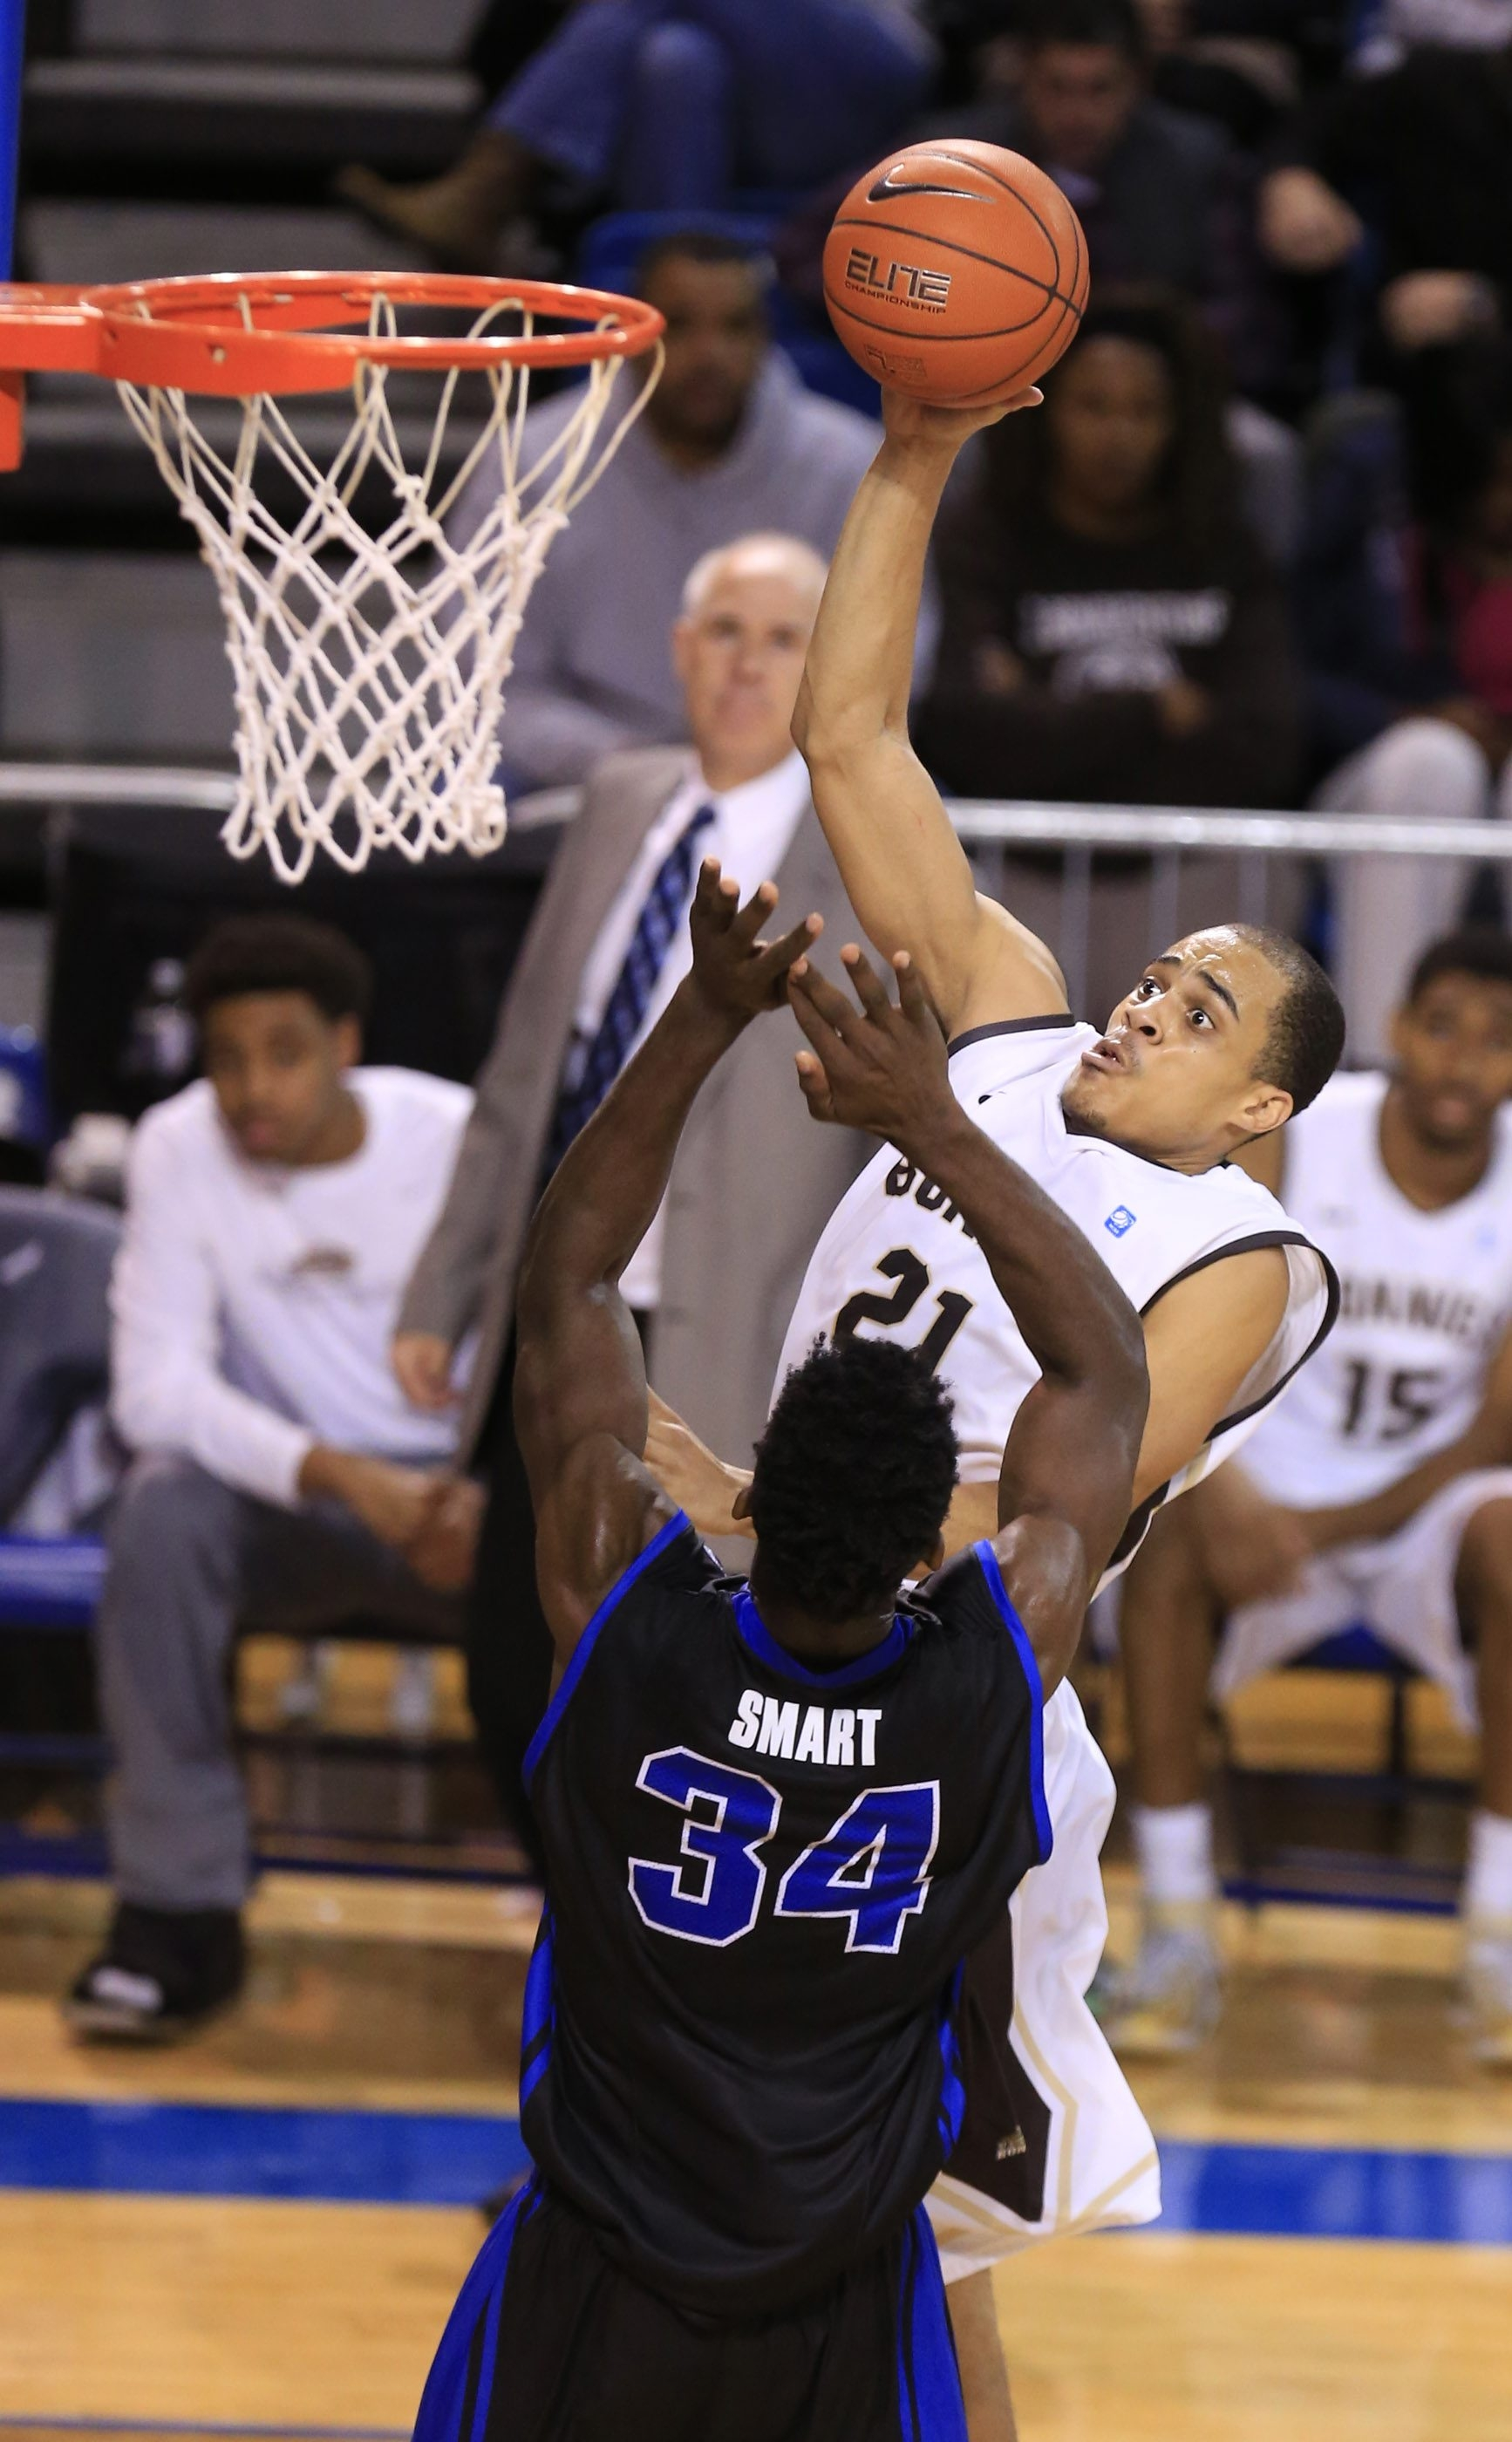 St. Bonaventure's Dion Wright soars to put in two of 26 points against UB on Wednesday night.